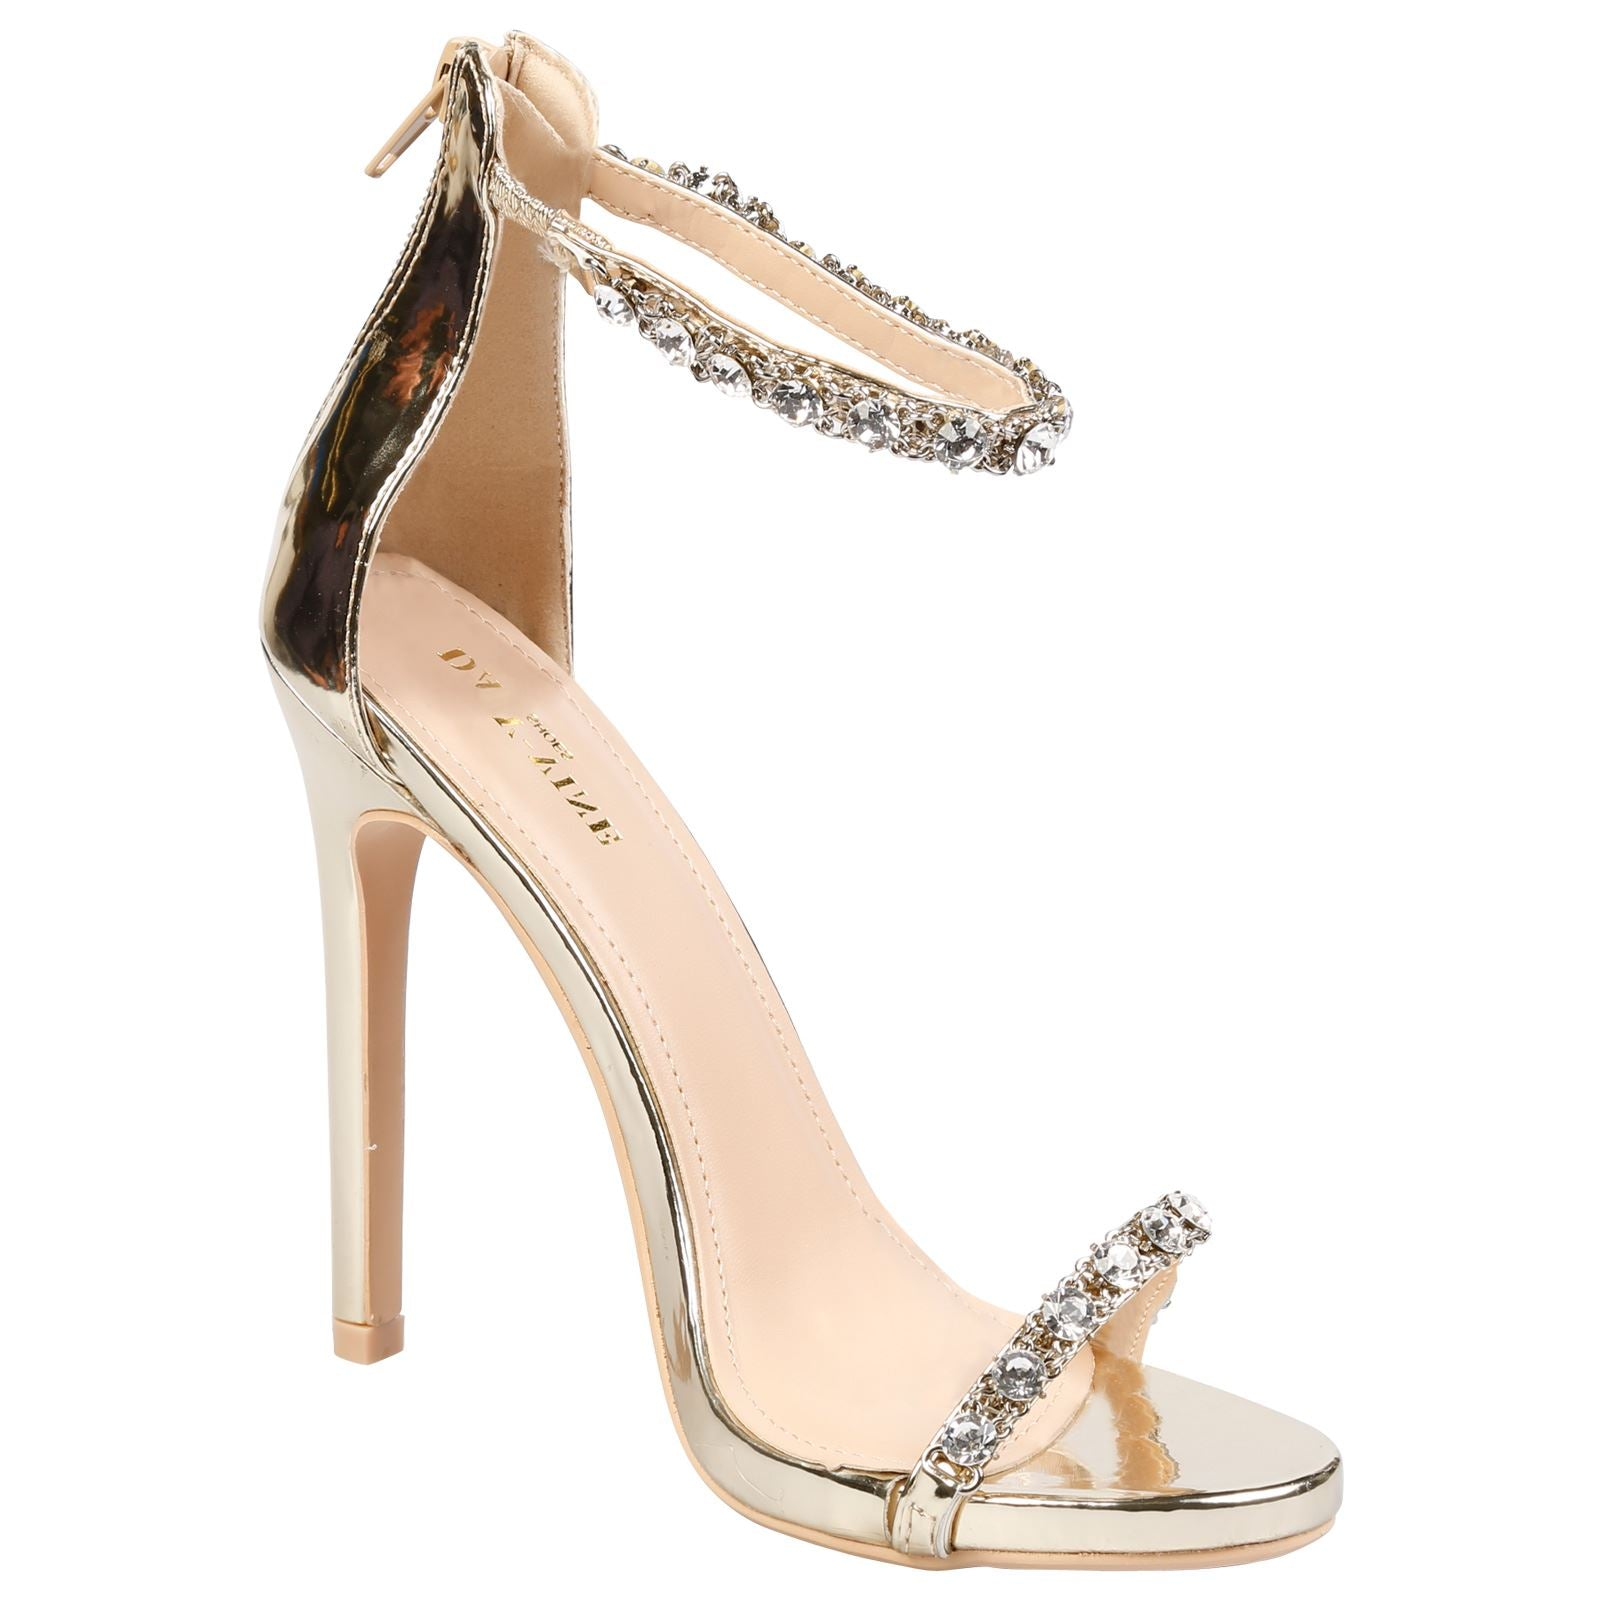 Laura Diamante Ankle Strap Sandals in Gold